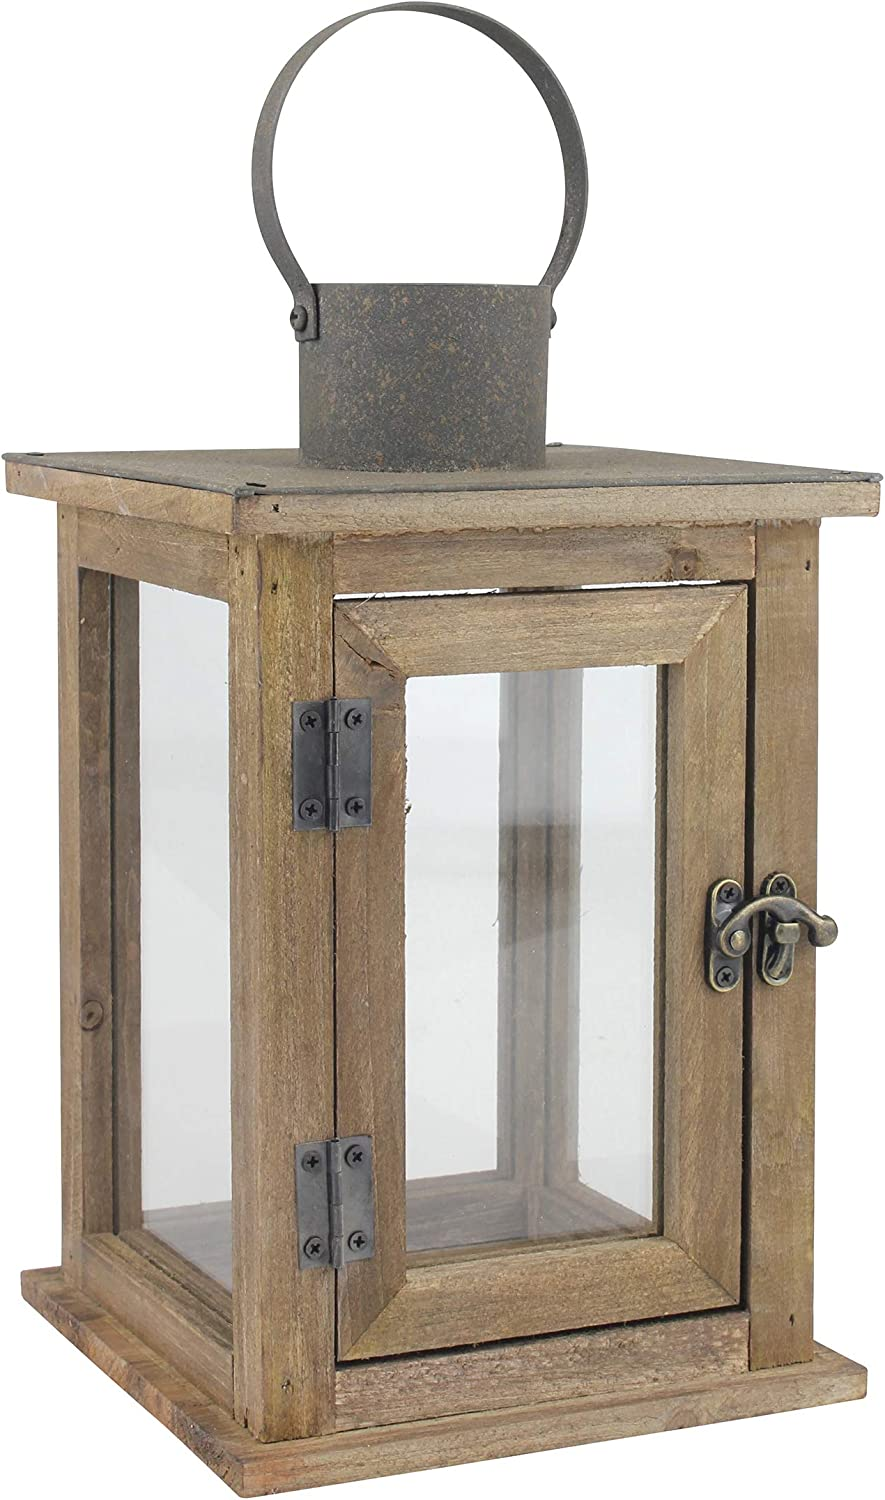 "Stonebriar Decorative 11"" Wooden Candle Lantern, Medium, Brown"